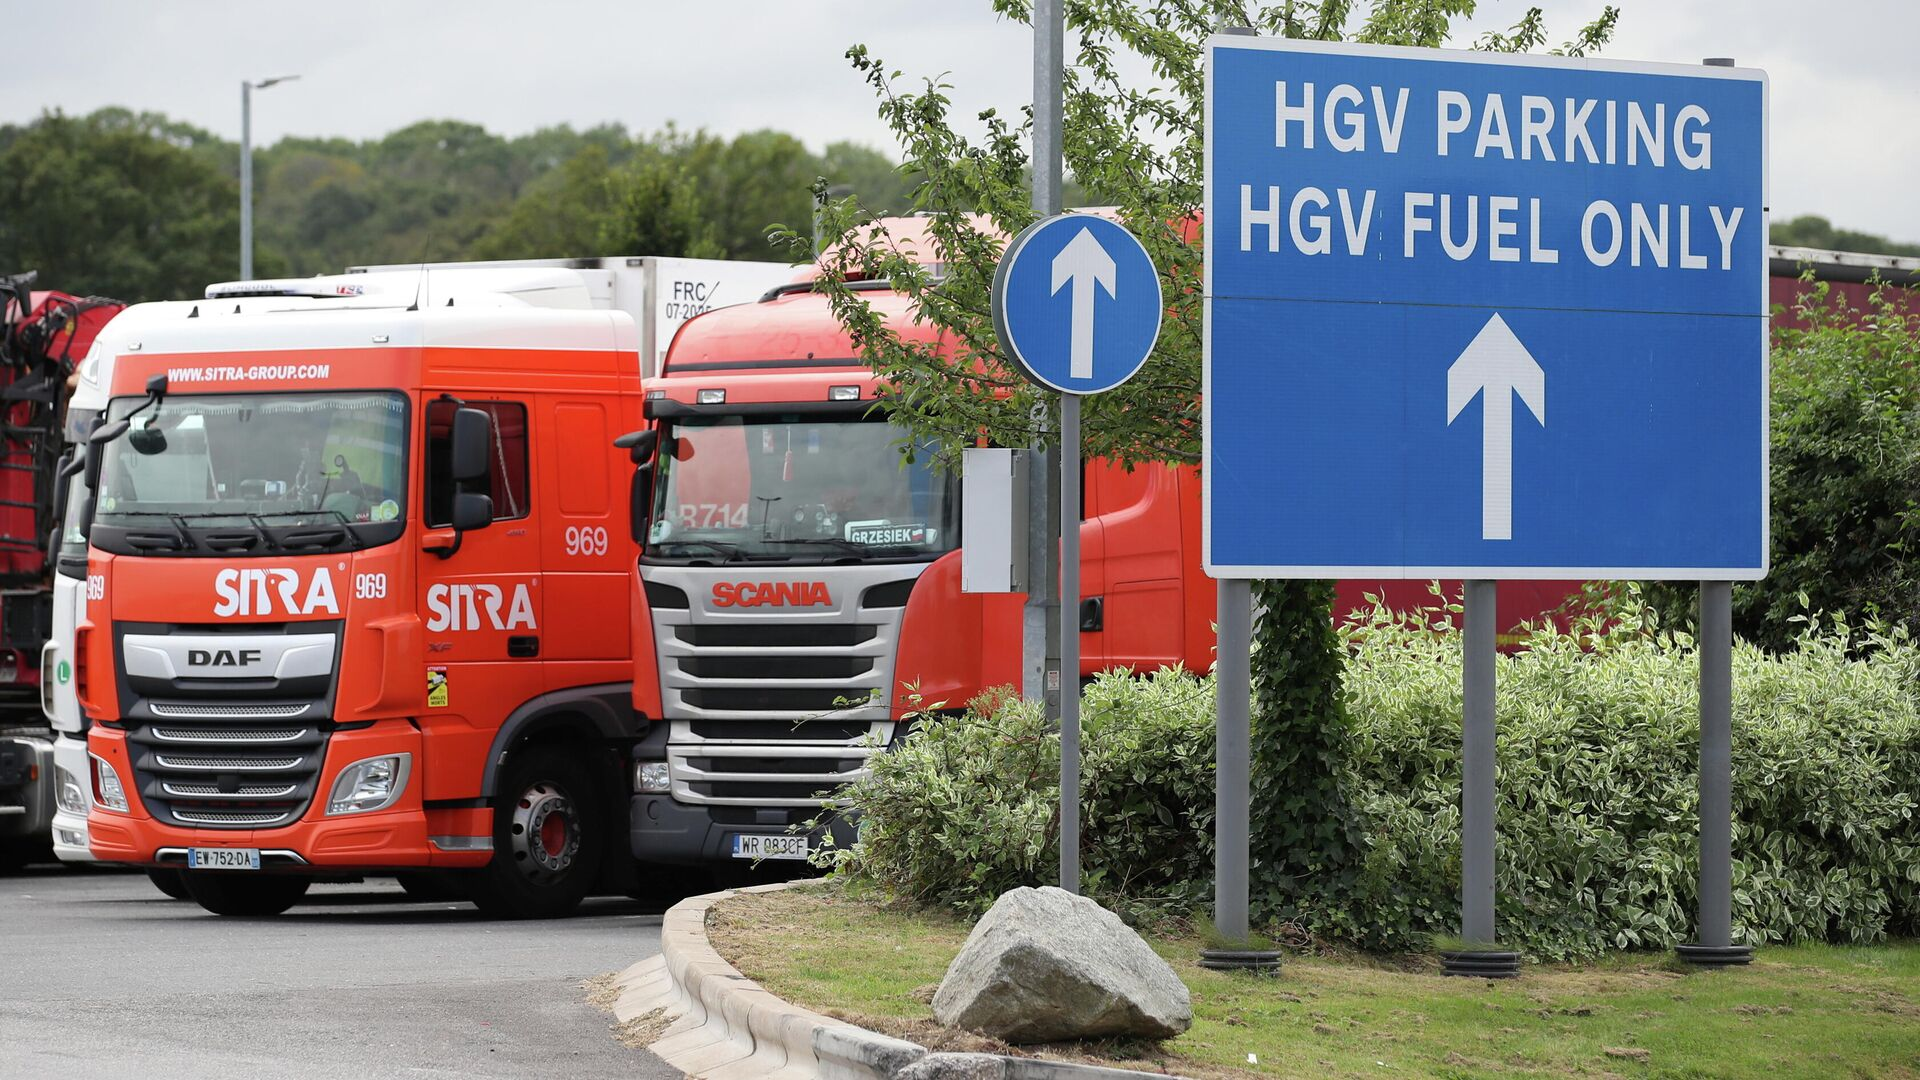 Lorries are seen at an HGV parking, at Cobham services on the M25 motorway, Cobham, Britain, August 31, 2021 - Sputnik International, 1920, 26.09.2021